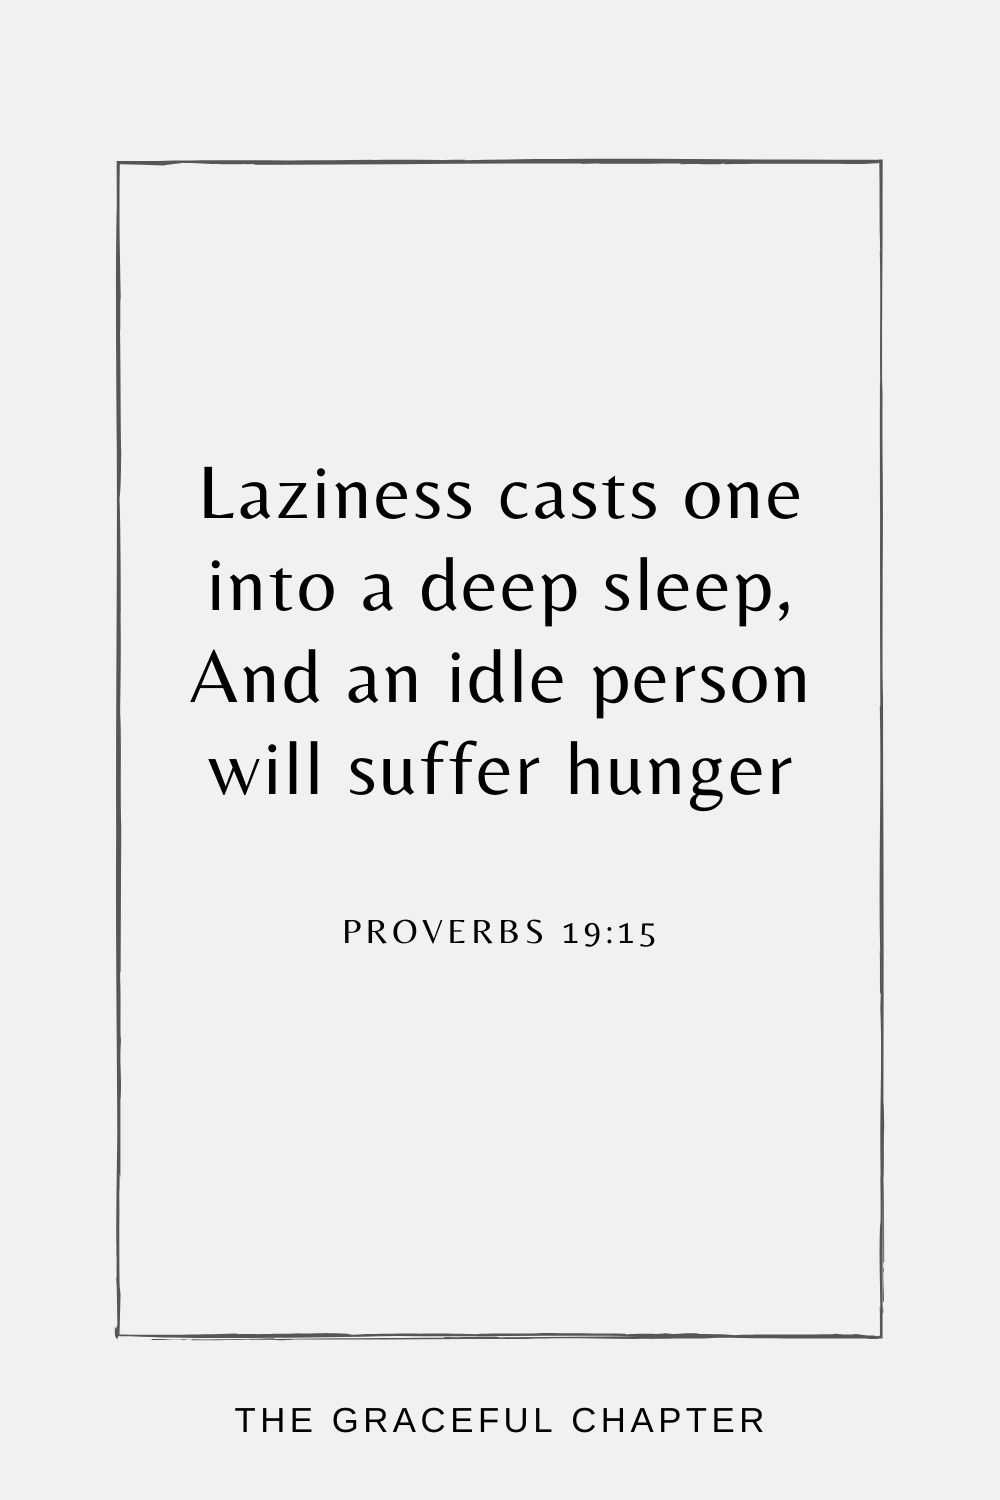 Laziness casts one into a deep sleep, And an idle person will suffer hunger Proverbs 19:15